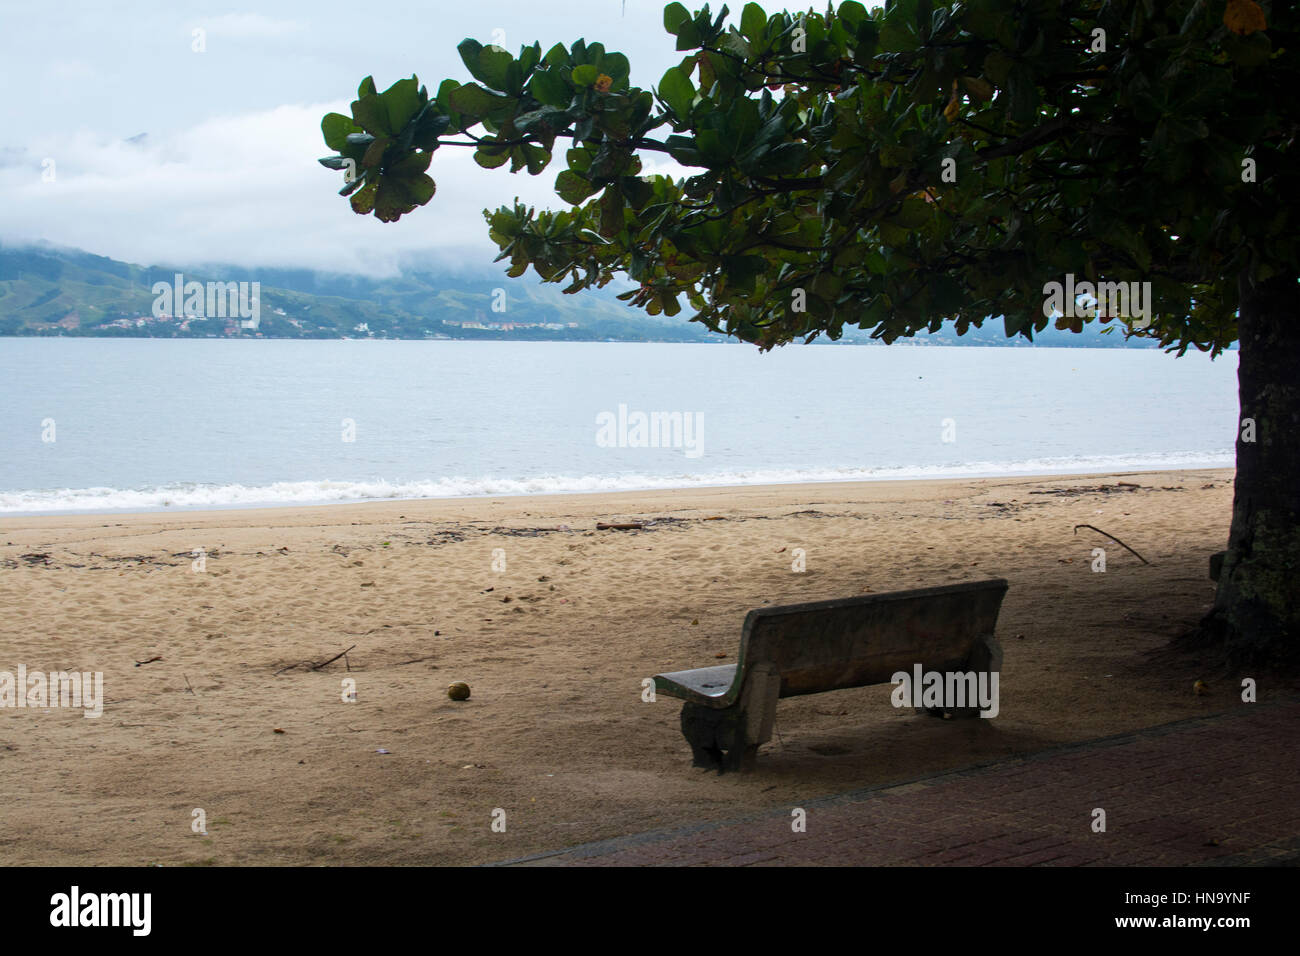 Moment - bench overlooking the beach - Stock Image